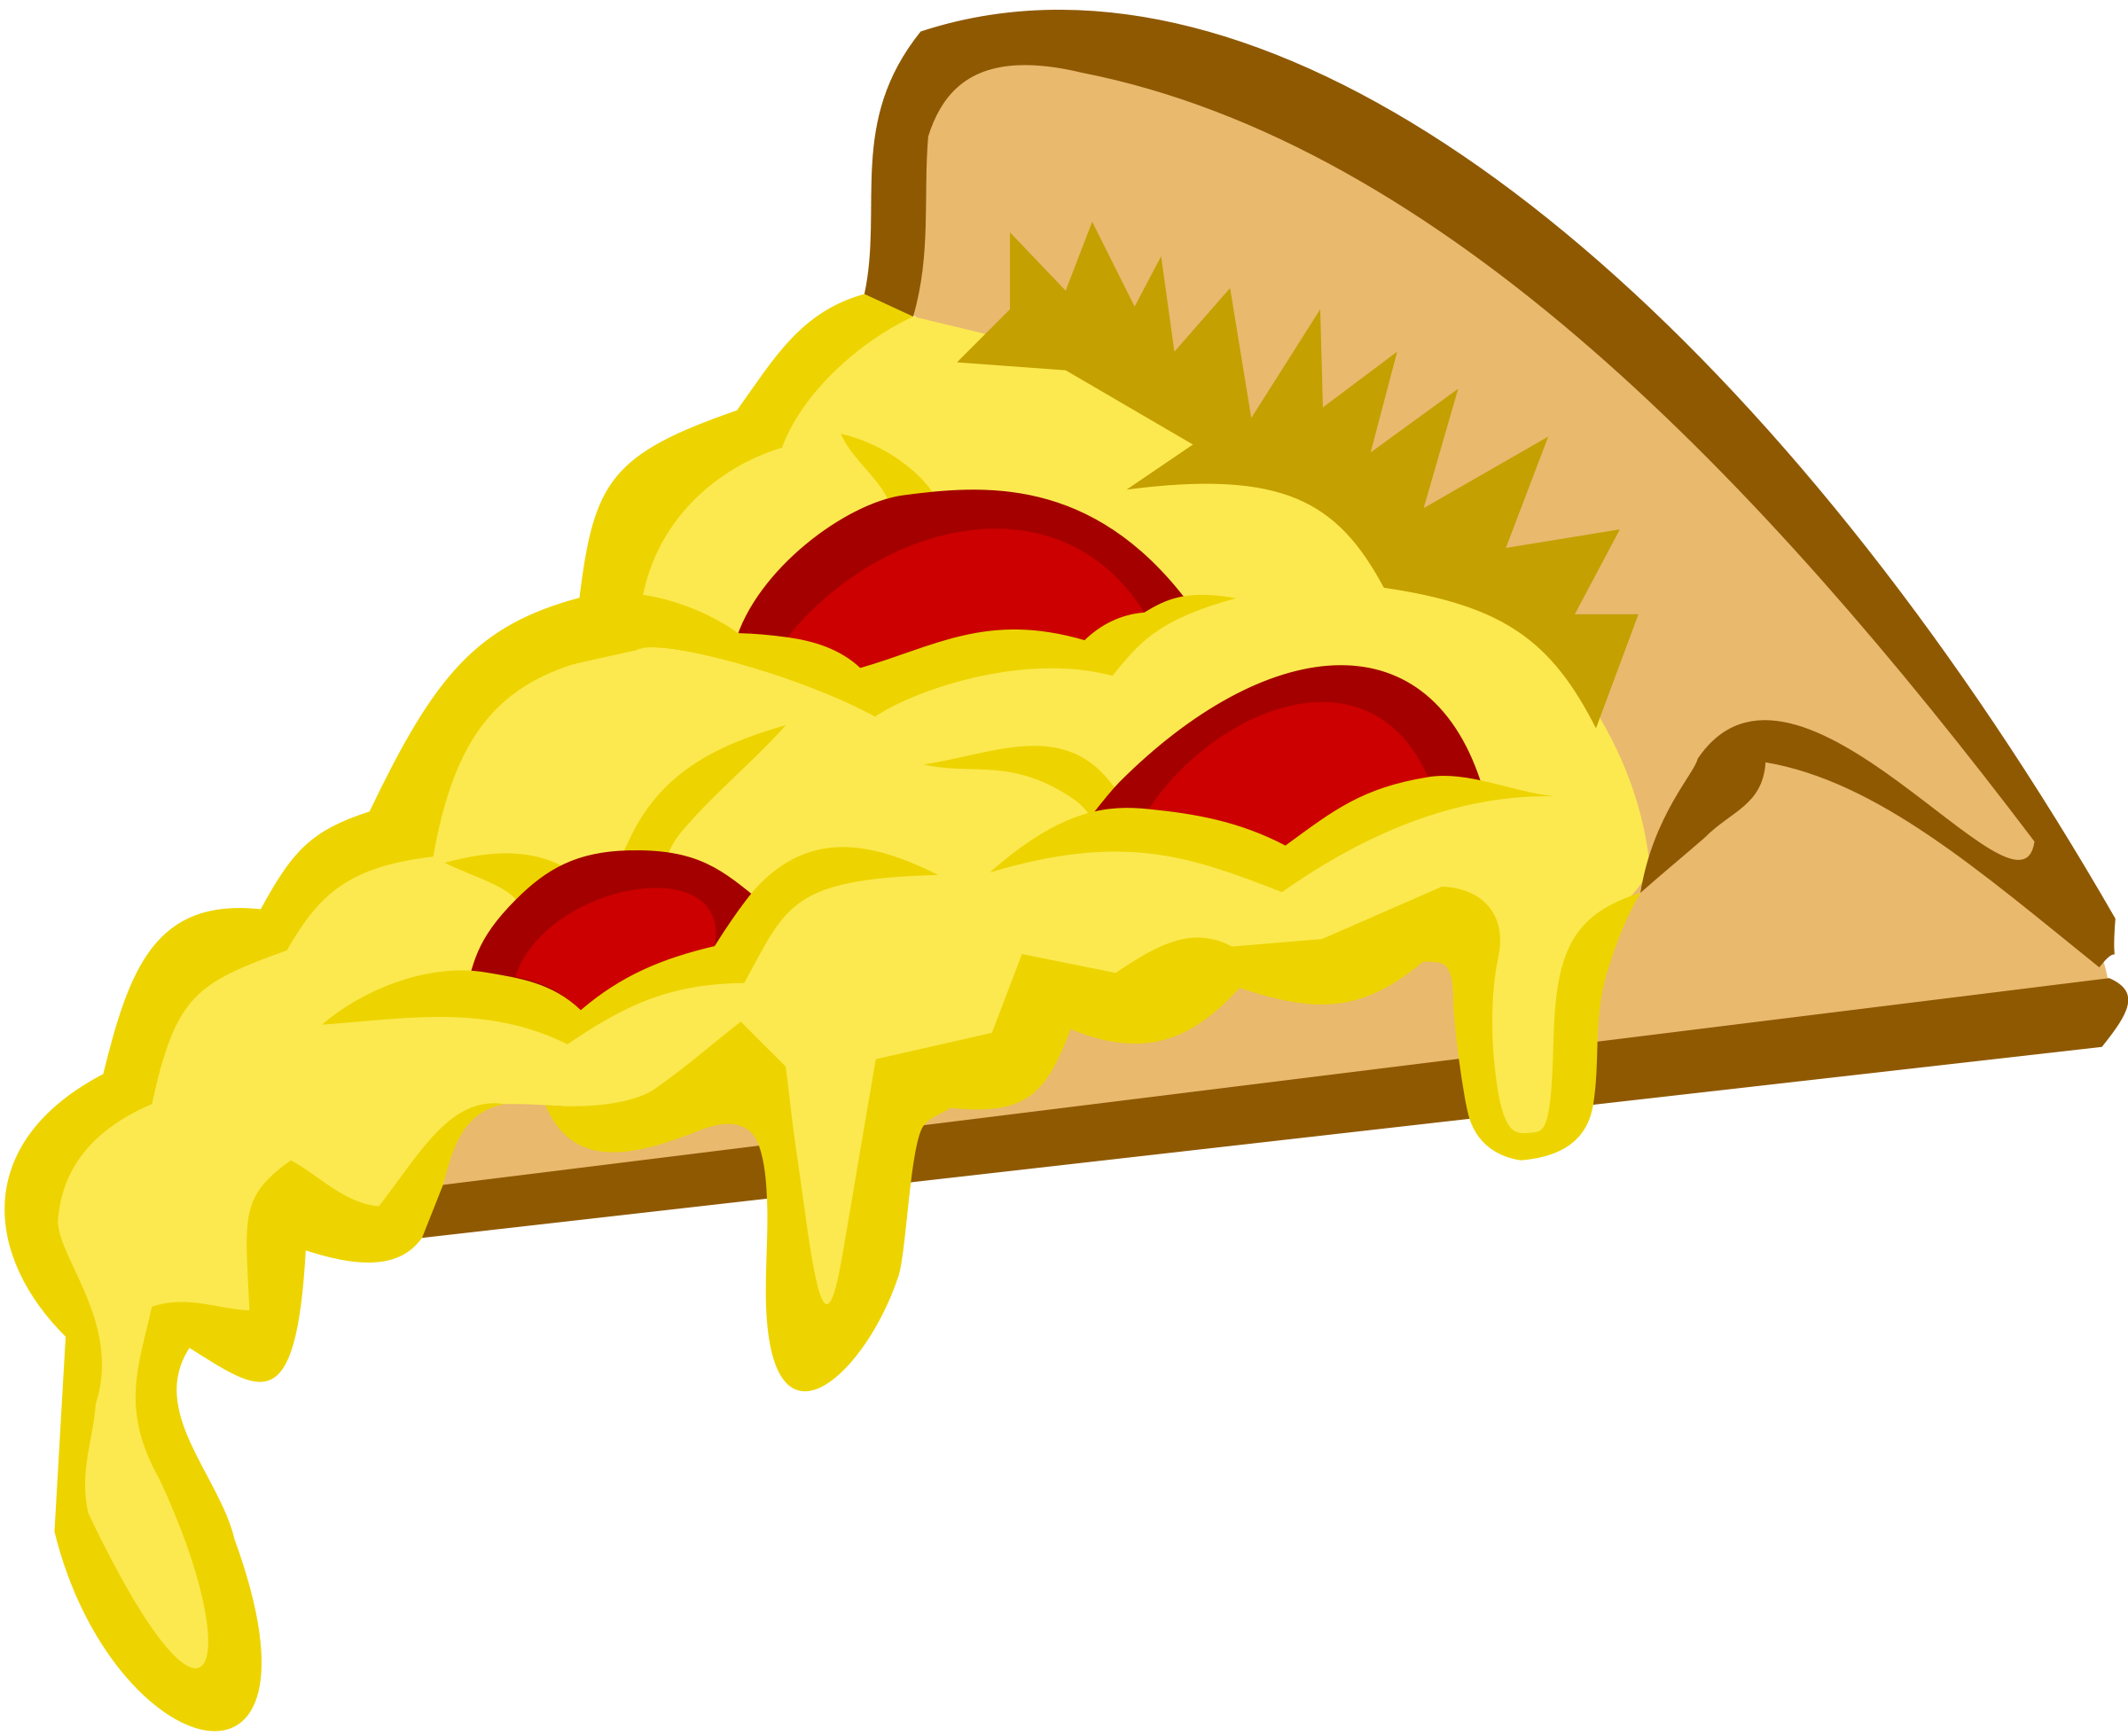 Pizza Clip Art Pizza Slice In Tango Colors Png